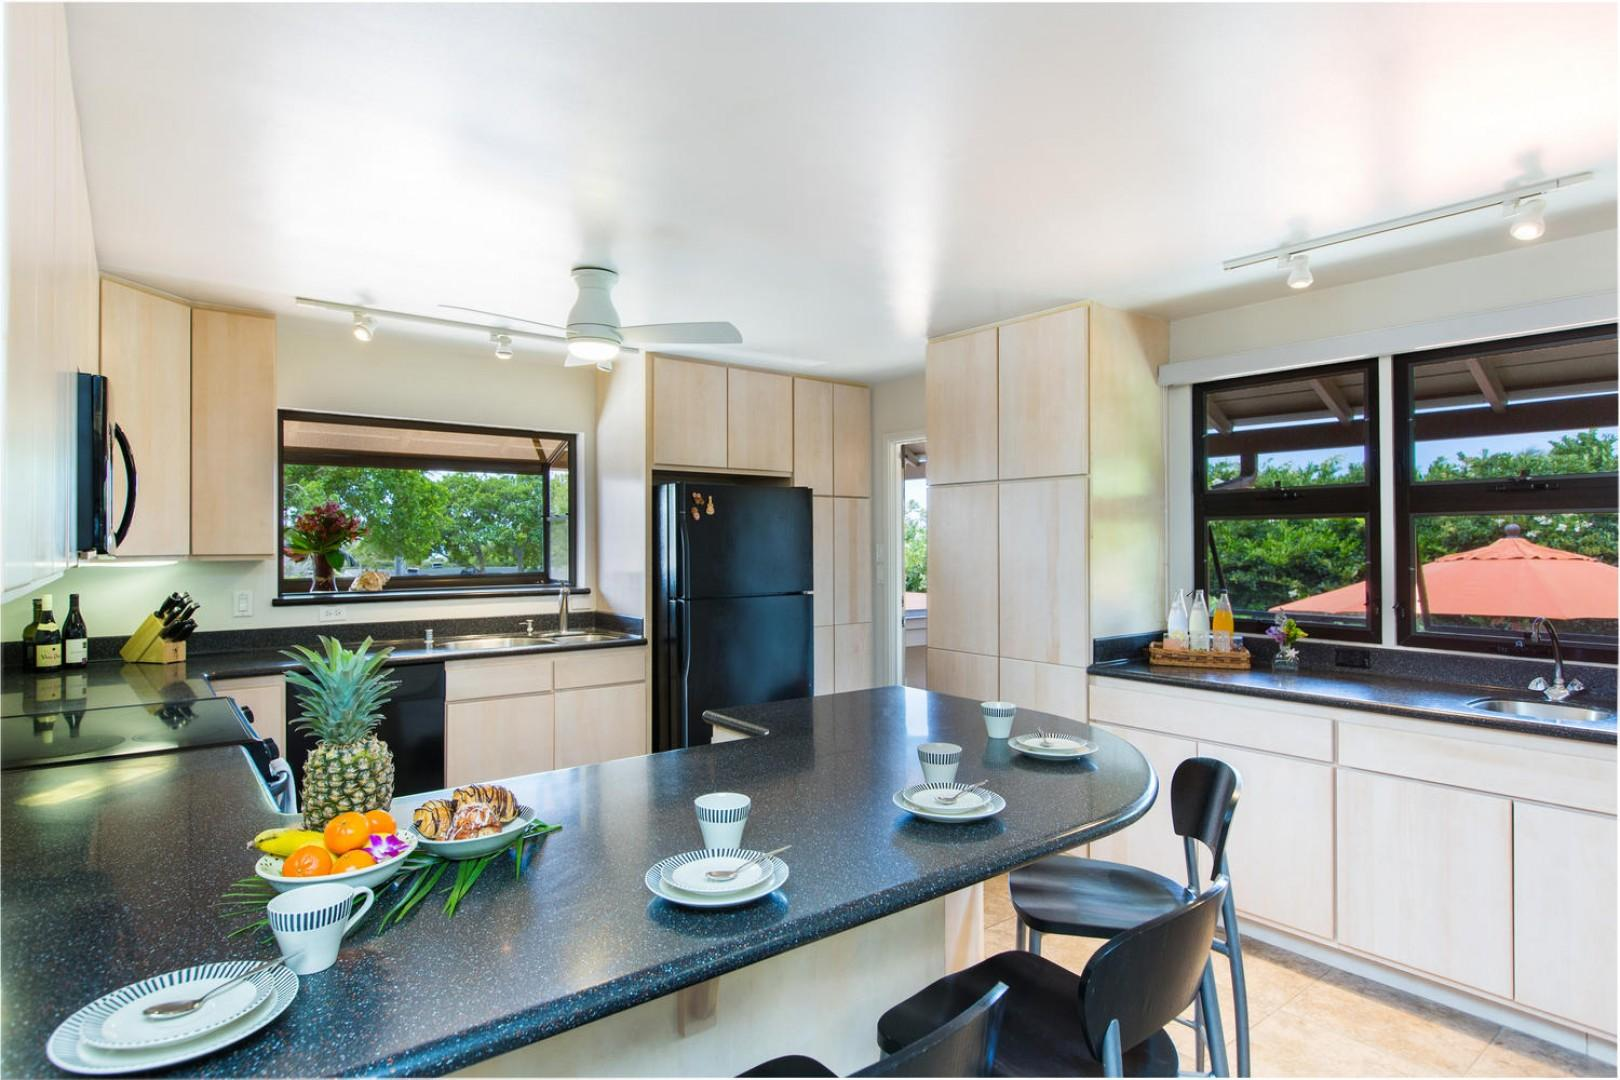 Kitchen, conveniently located near the outdoor patio and dining room.